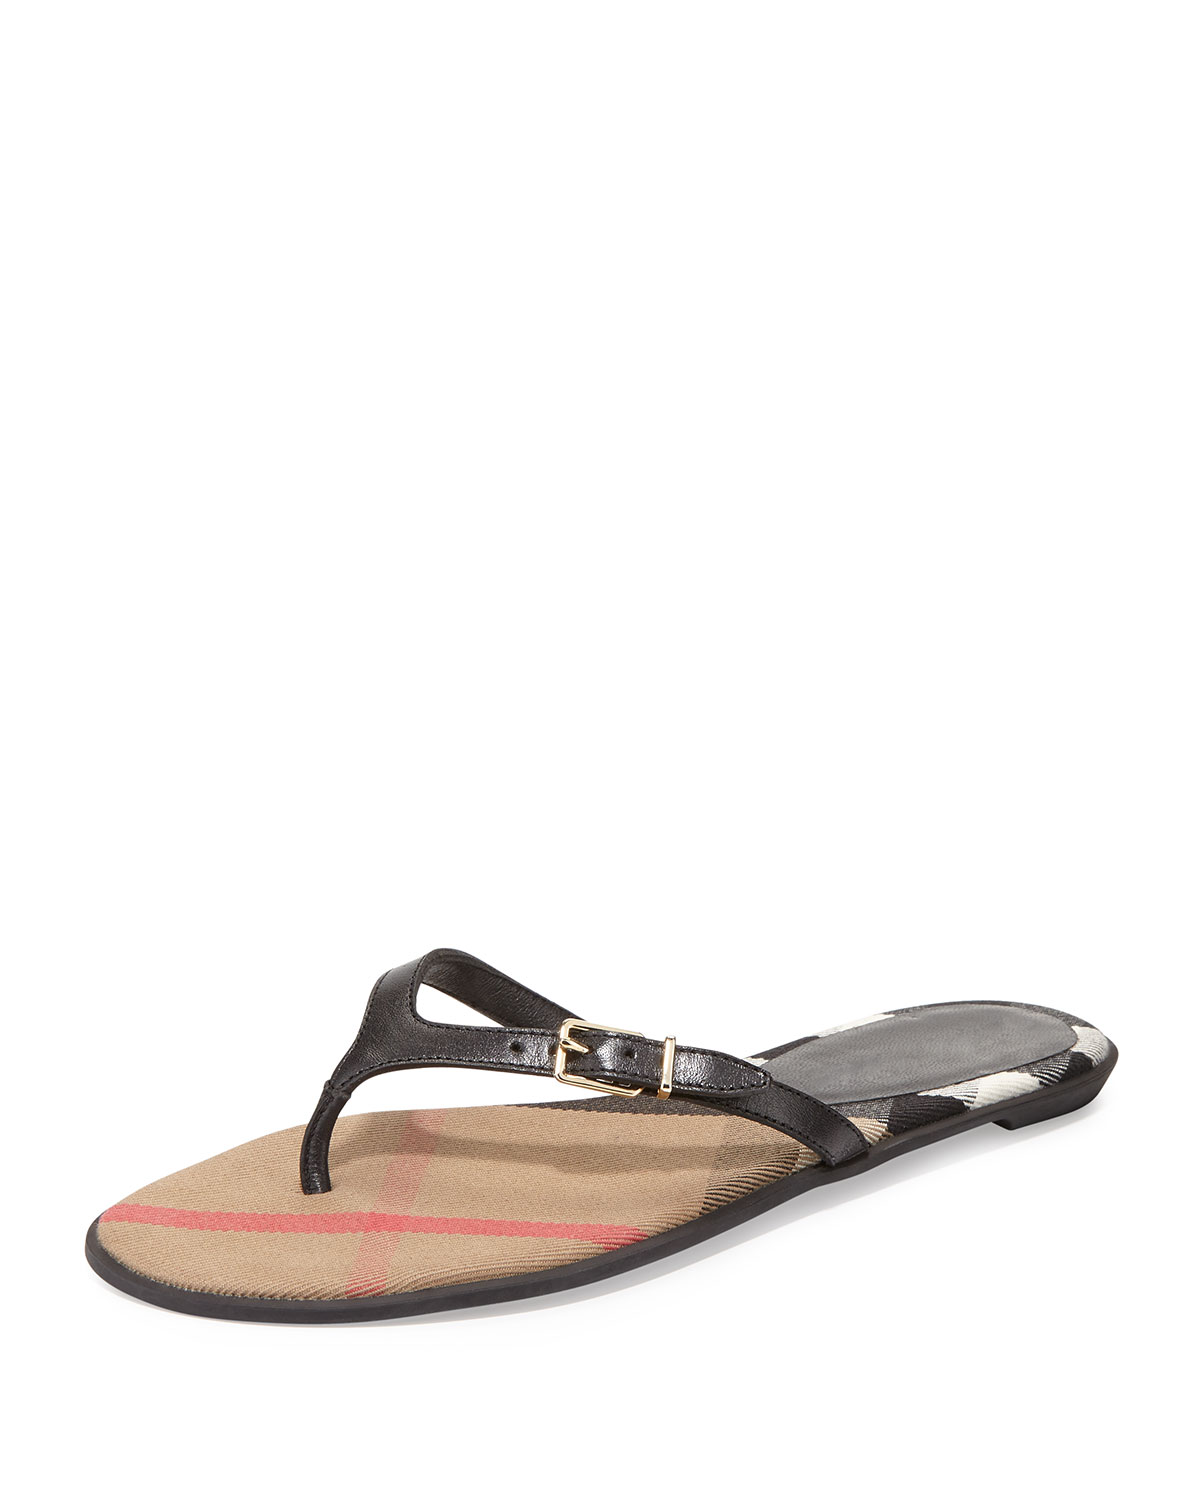 83793416563a7d Burberry Meadow Leather Thong Sandal